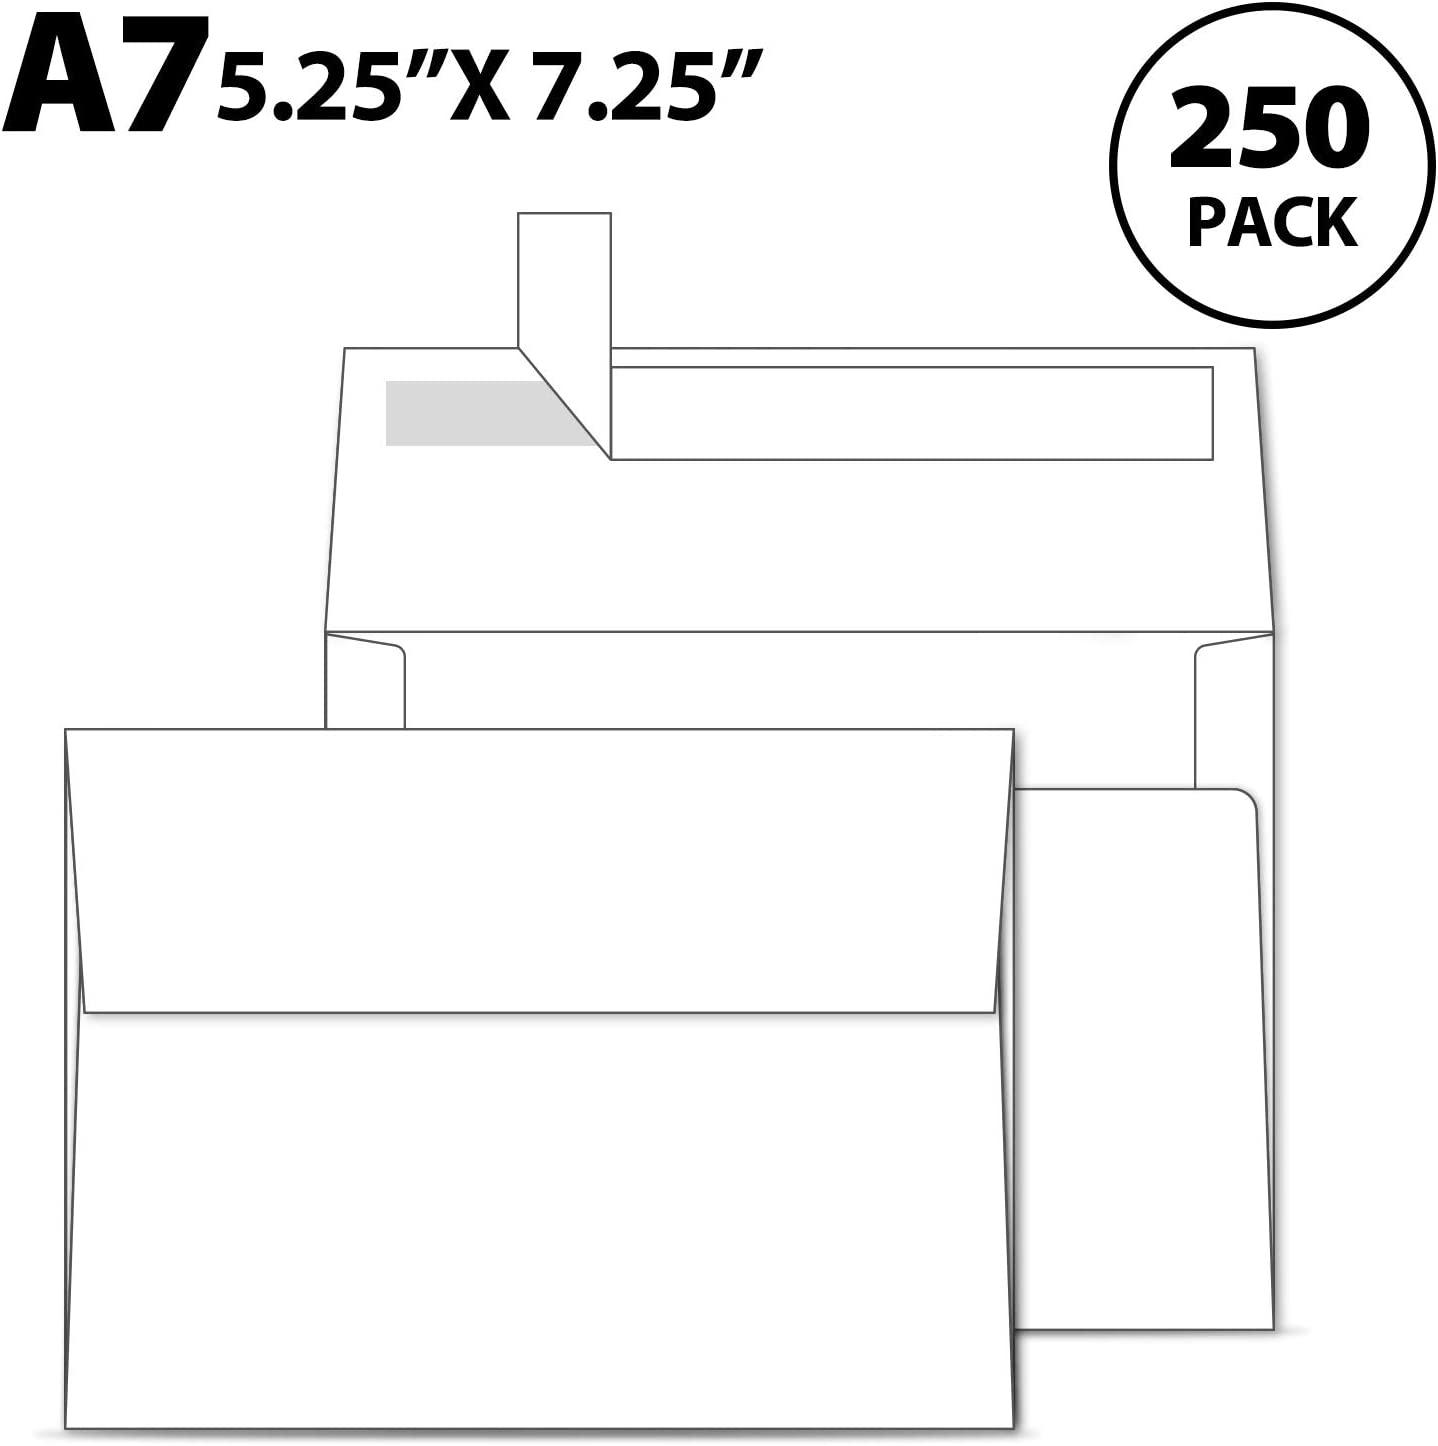 Ohuhu A7 Printable White Envelopes 5X7 250 Pack - Quick Self Seal,for 5x7 Cards, Perfect for Chirstmas Cards, Weddings, Invitations, Photos, Graduation, Baby Shower, 5.25 x 7.25 inches